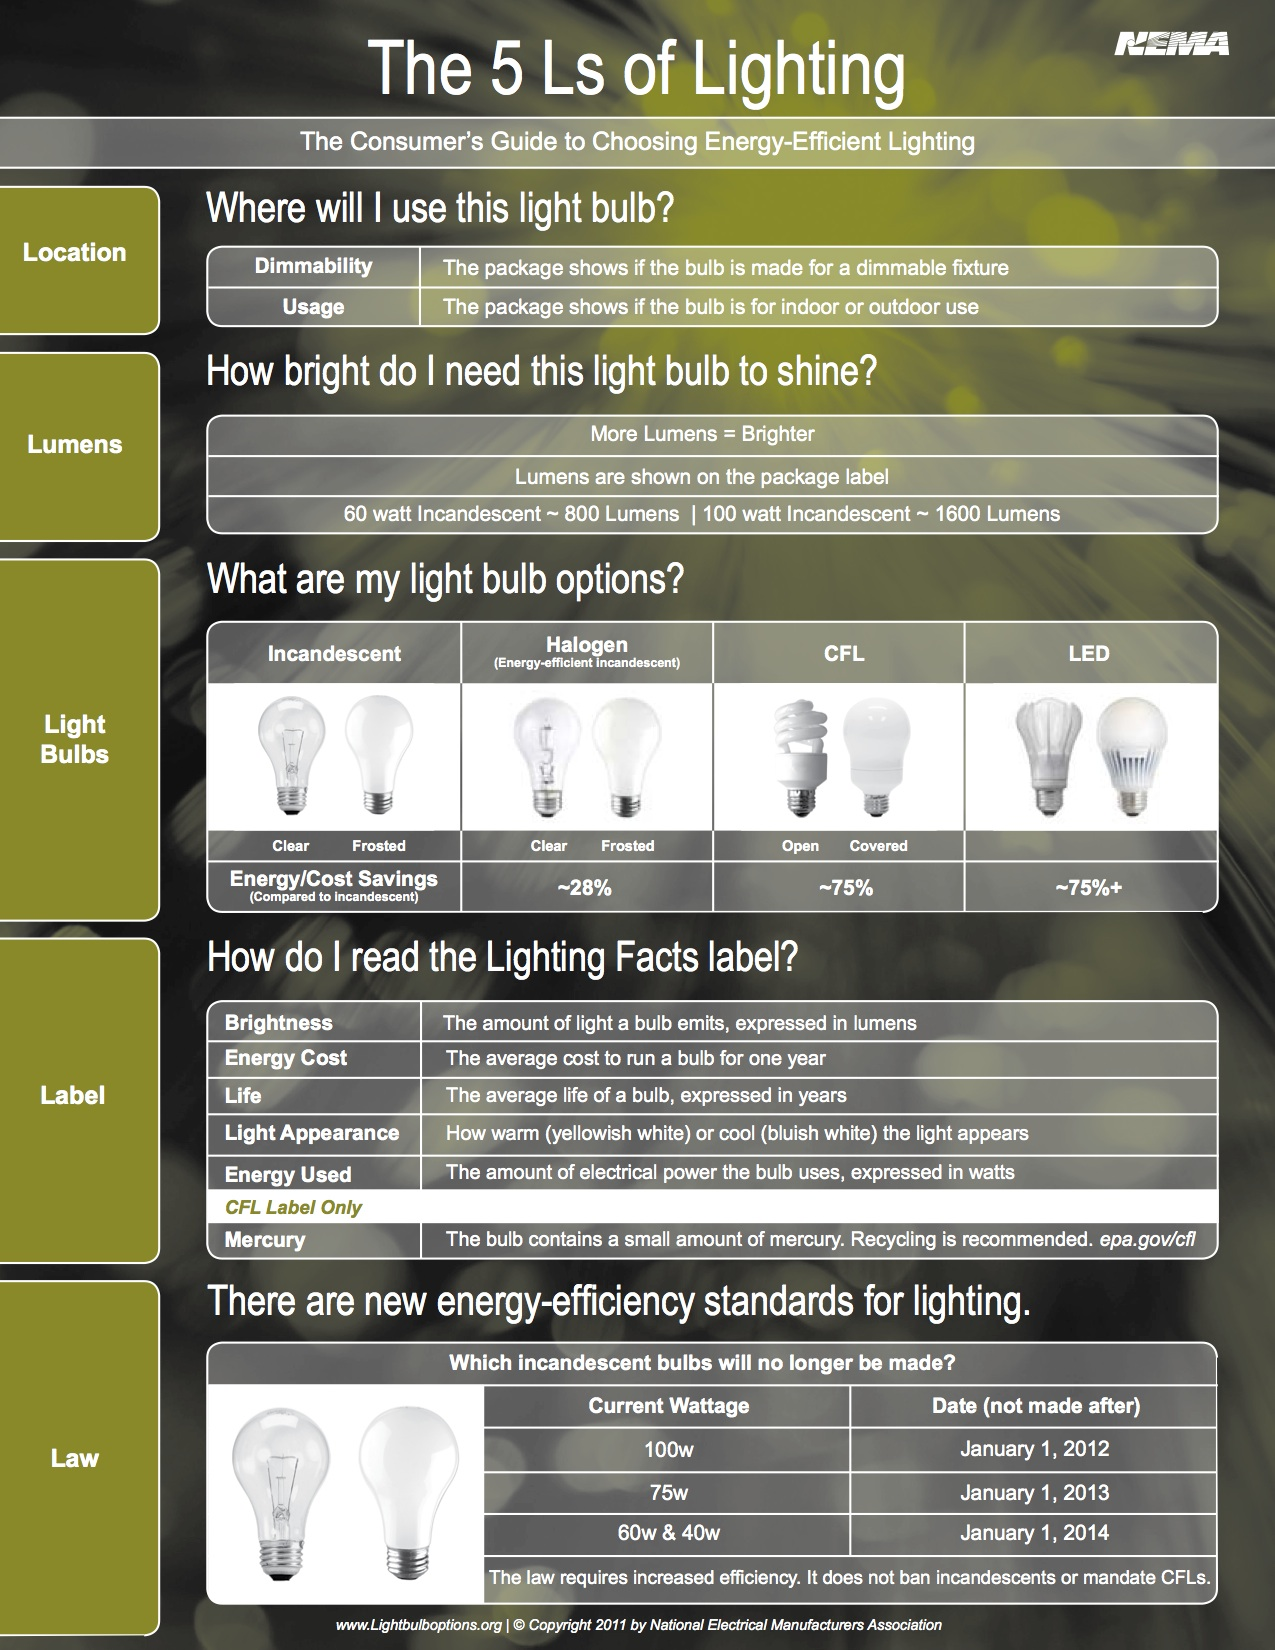 Consumers Guide to Choosing Energy-Efficient Lighting